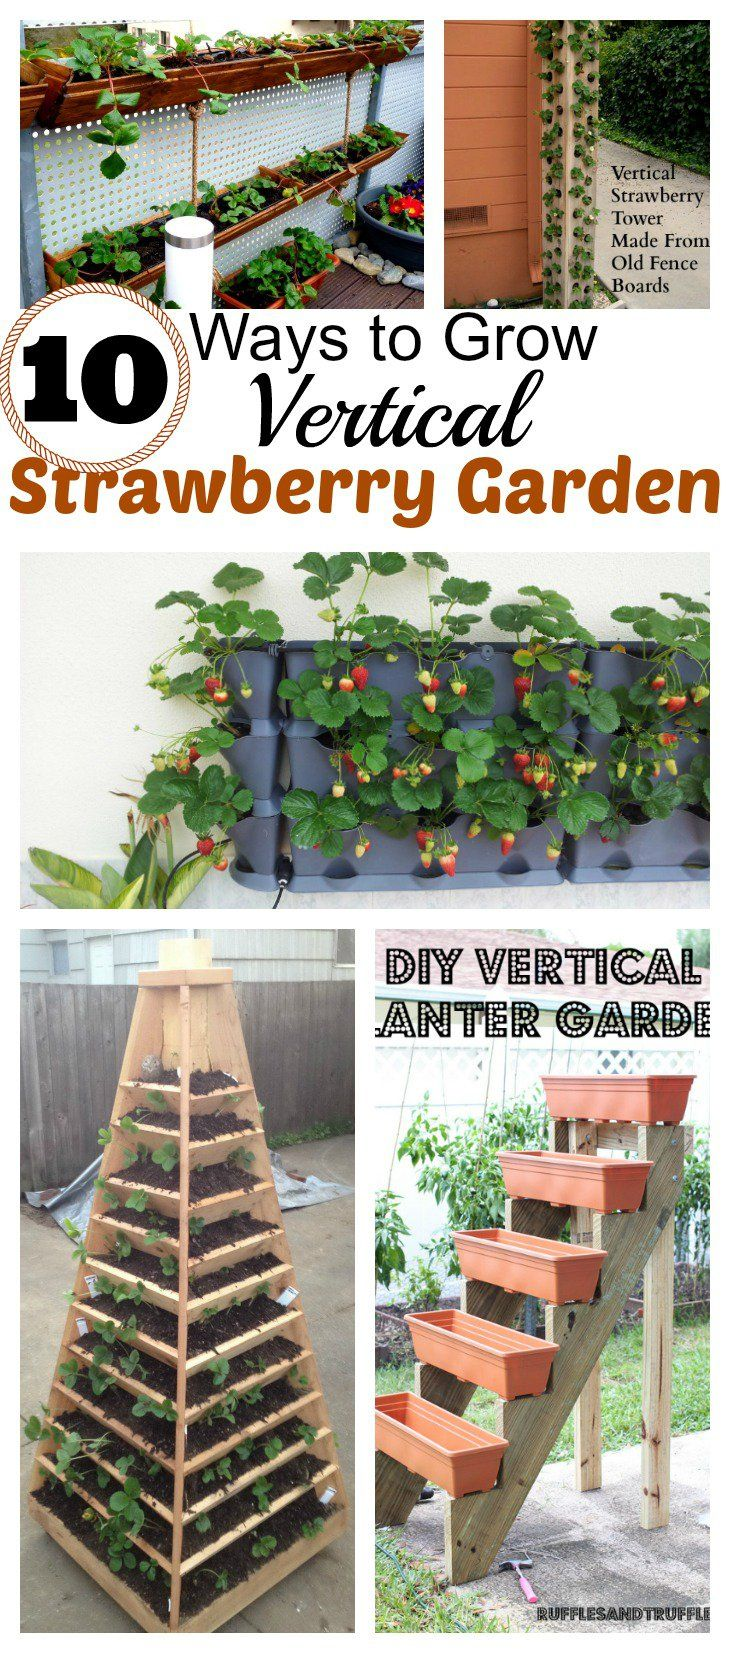 Growing strawberries in gutters diy idea - 10 Diy Vertical Container Strawberry Planters